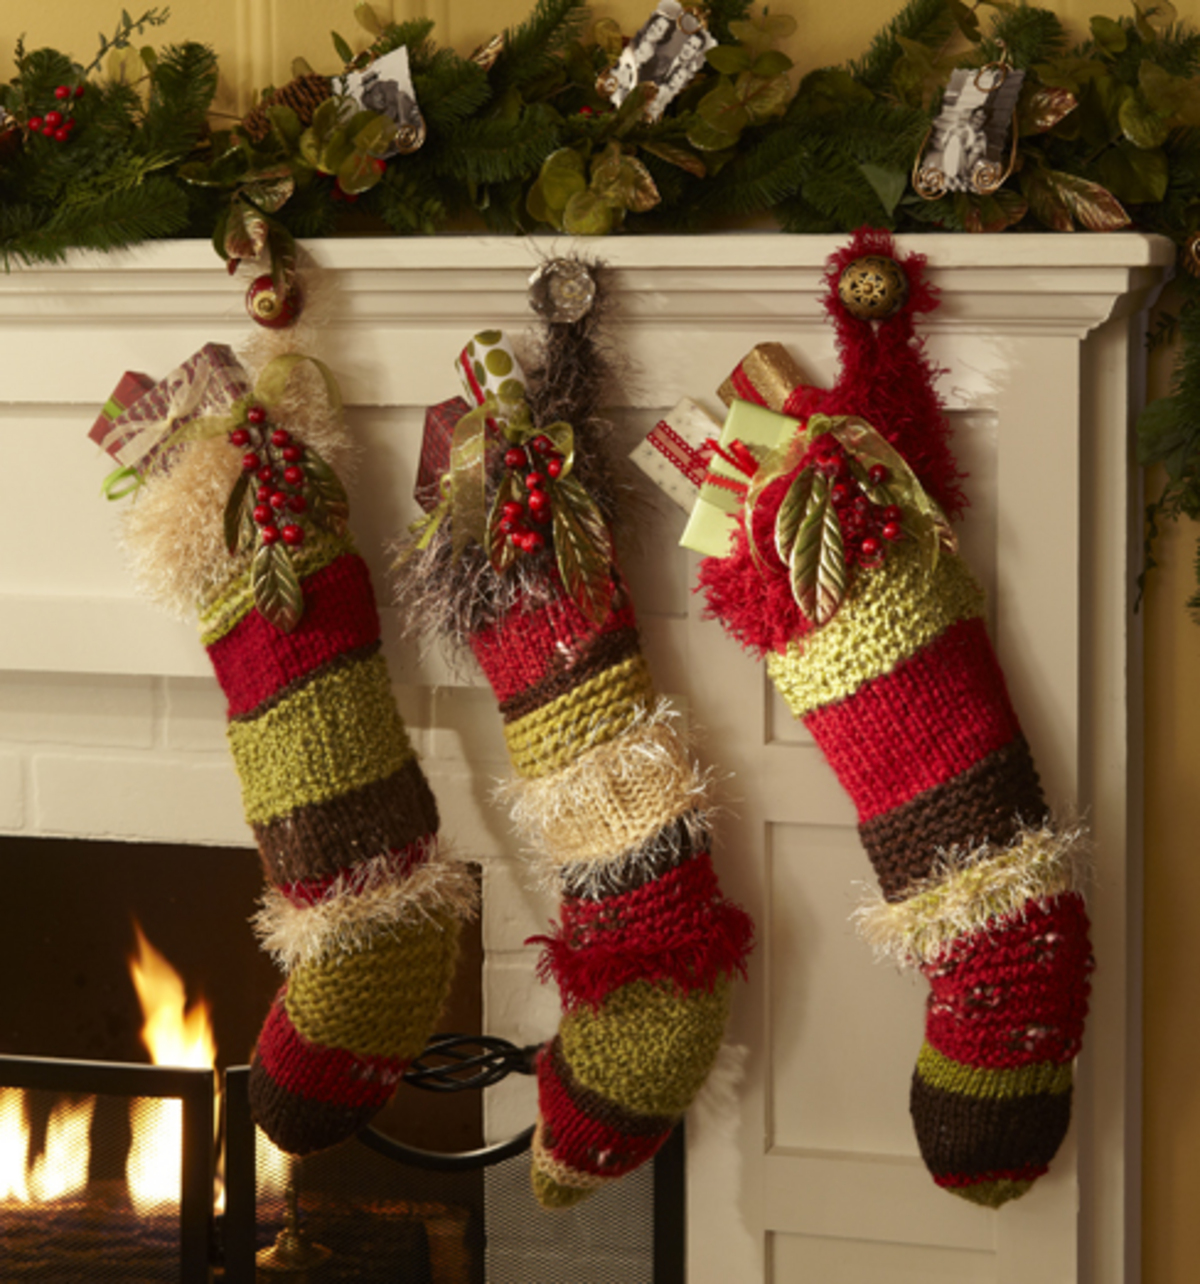 Knitted Christmas Stockings - DIY Projects | JOANN